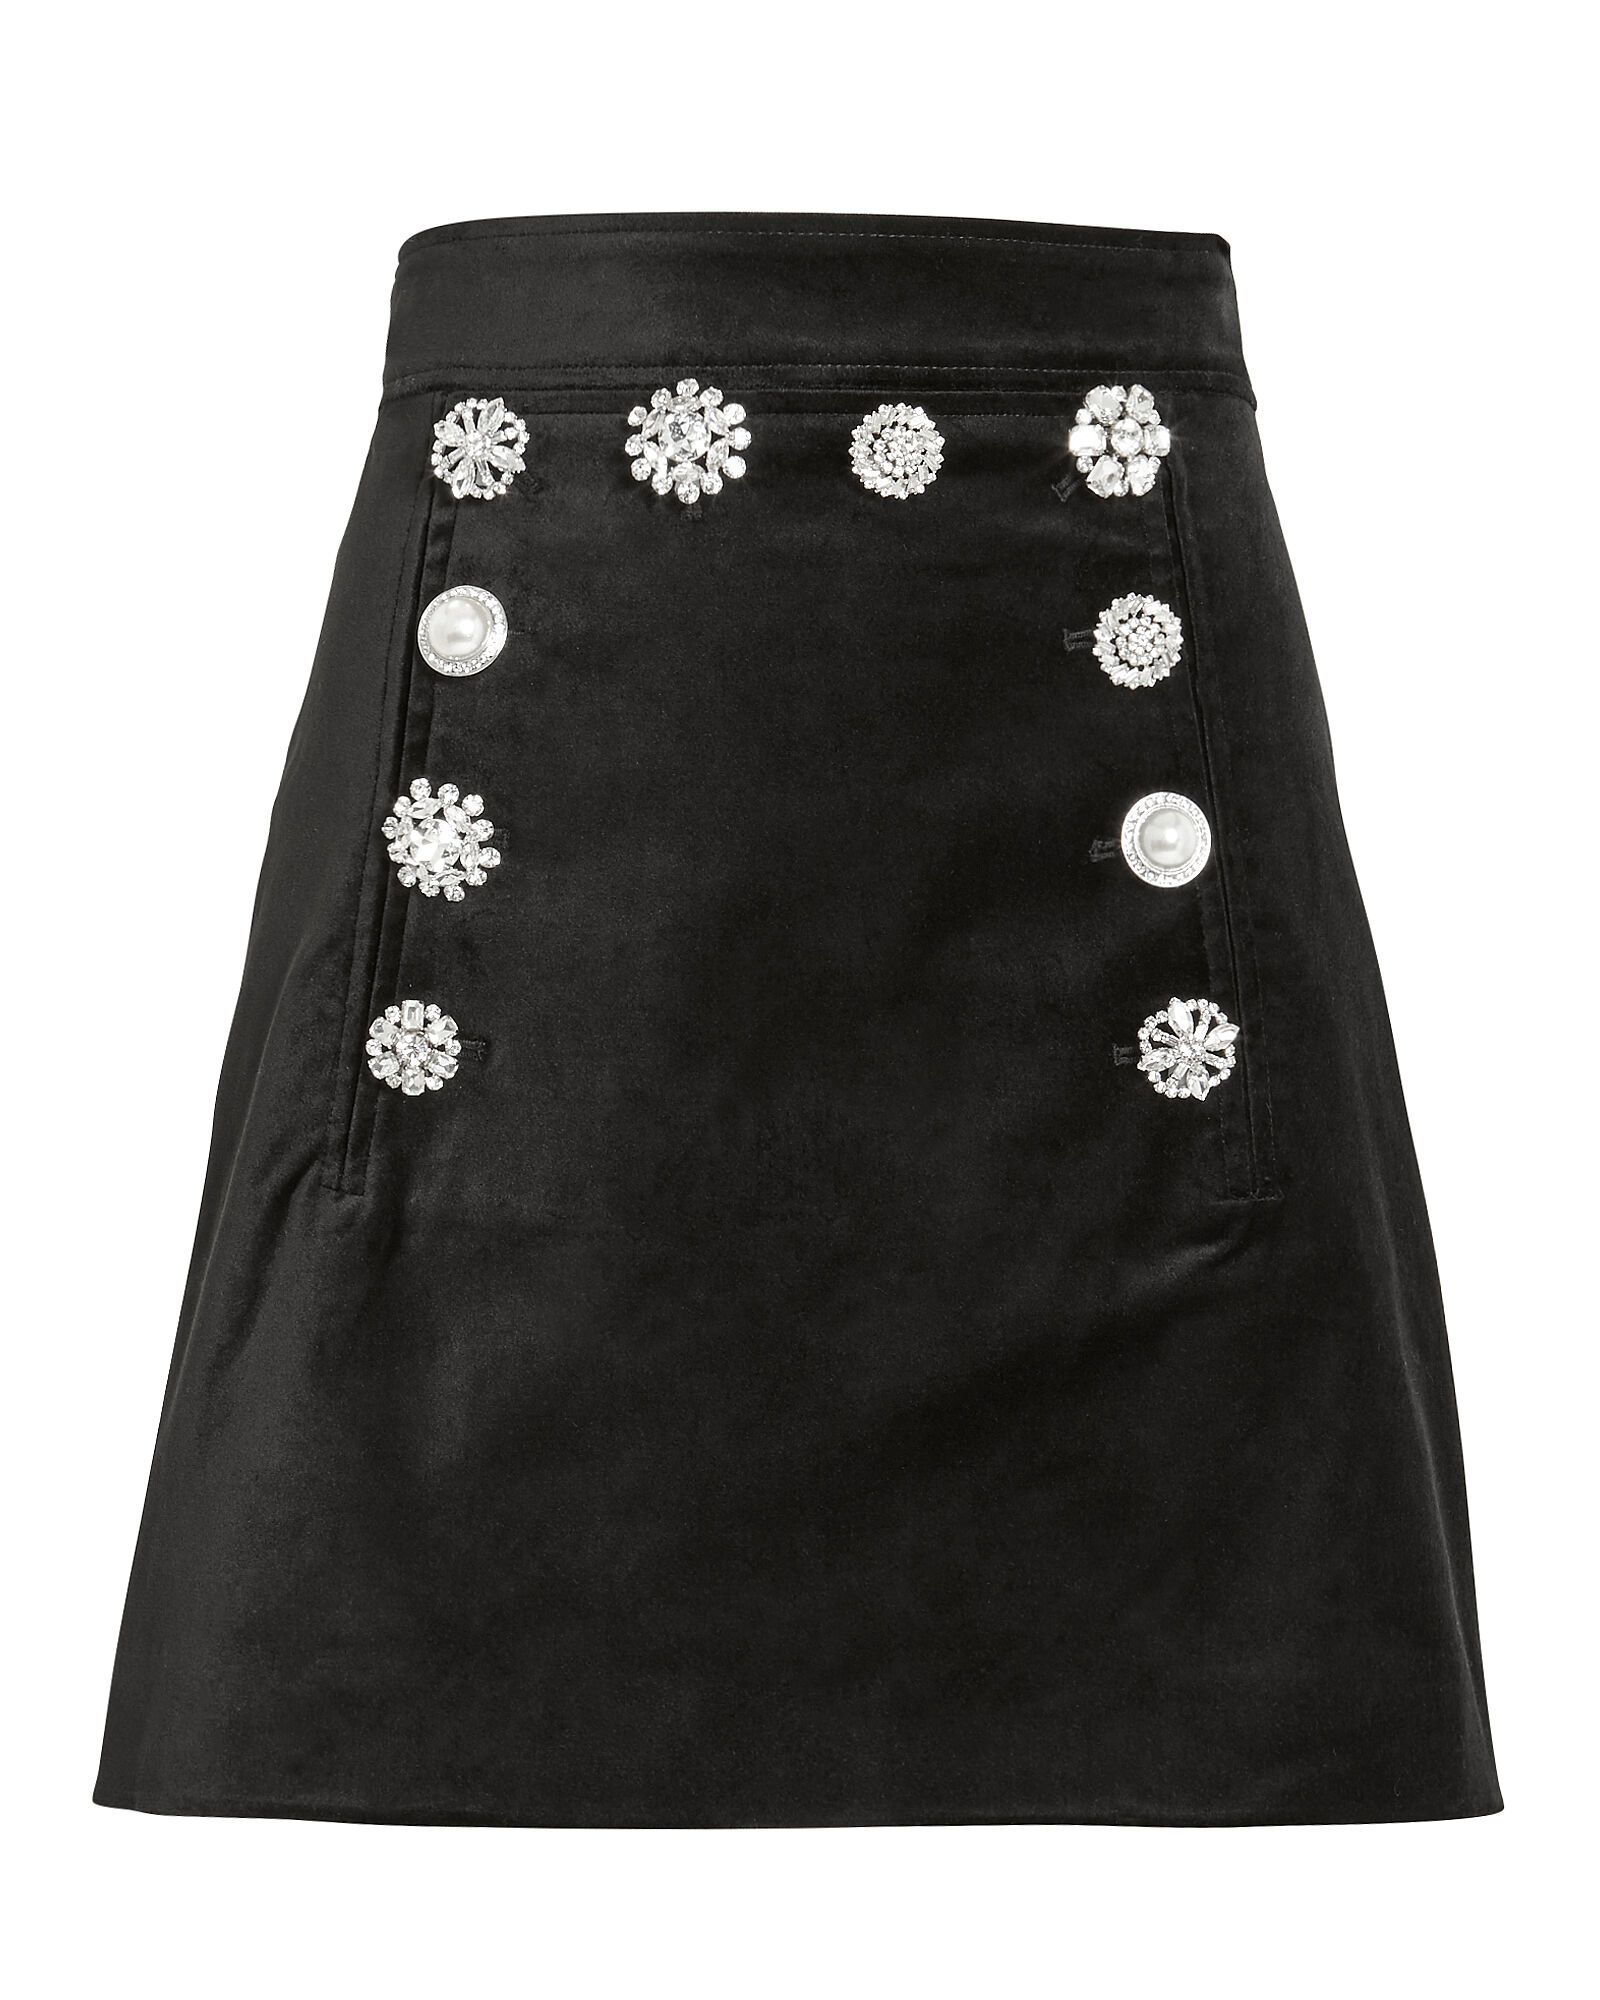 Ording Mini Skirt, BLACK, hi-res